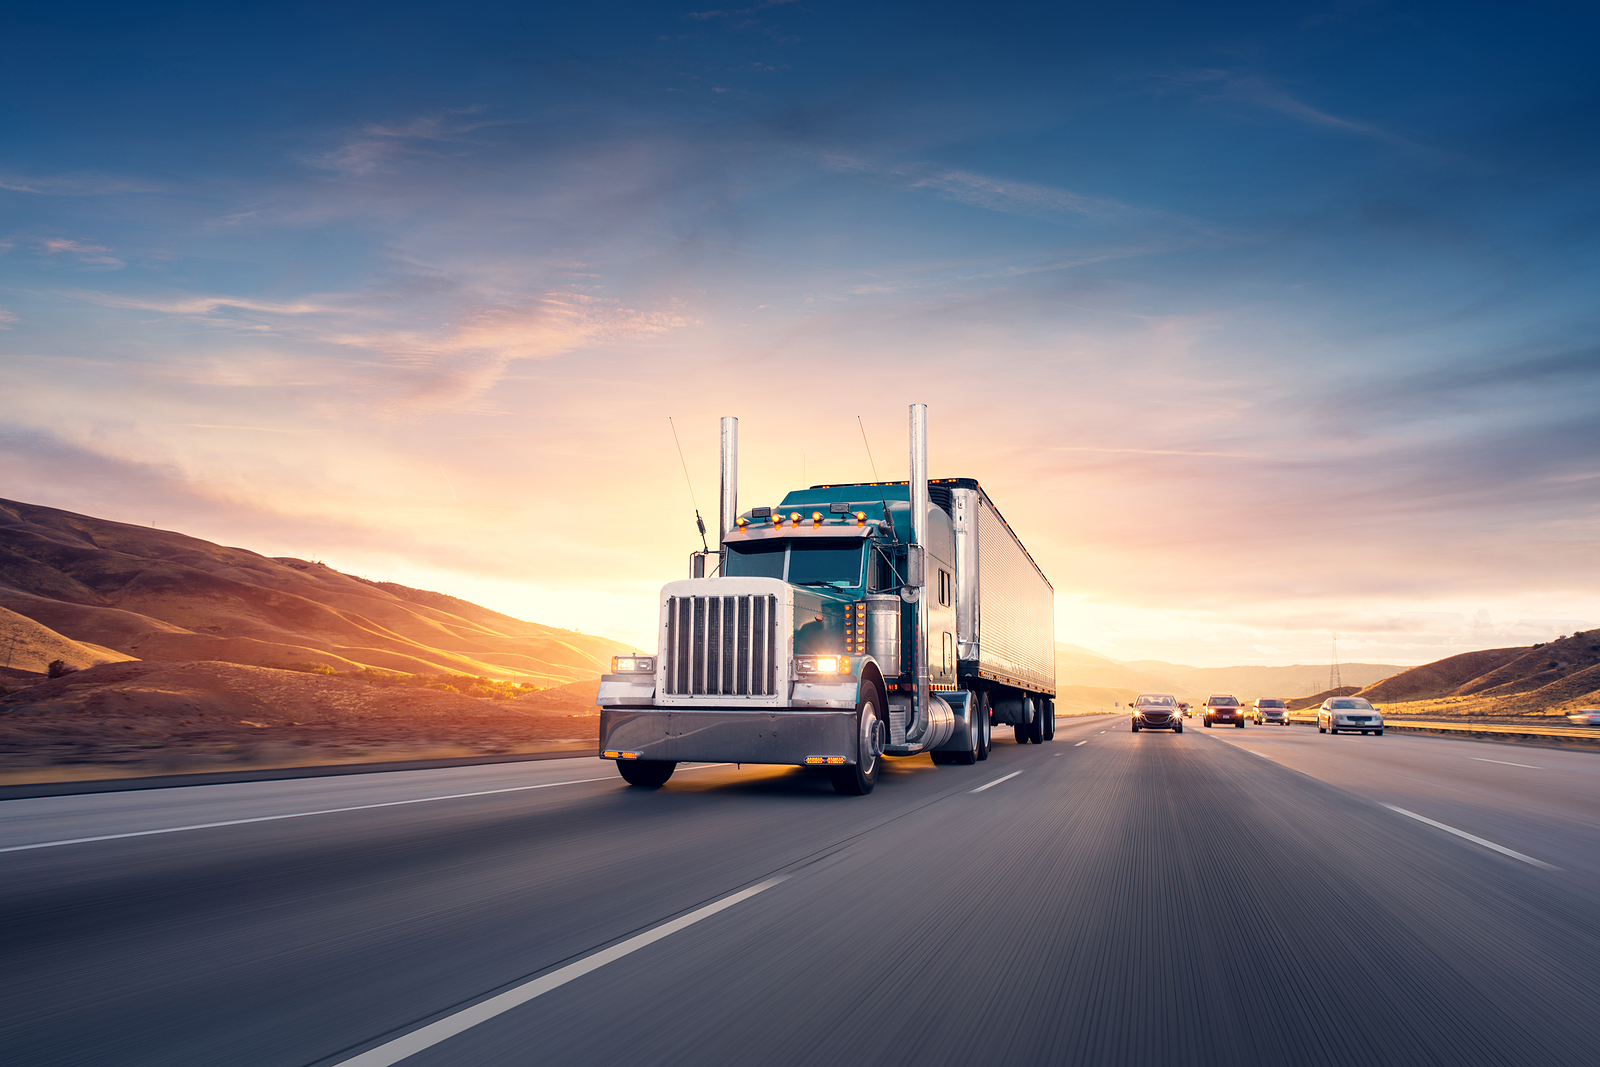 Truck-Driving-on-Freeway-at-Sunset